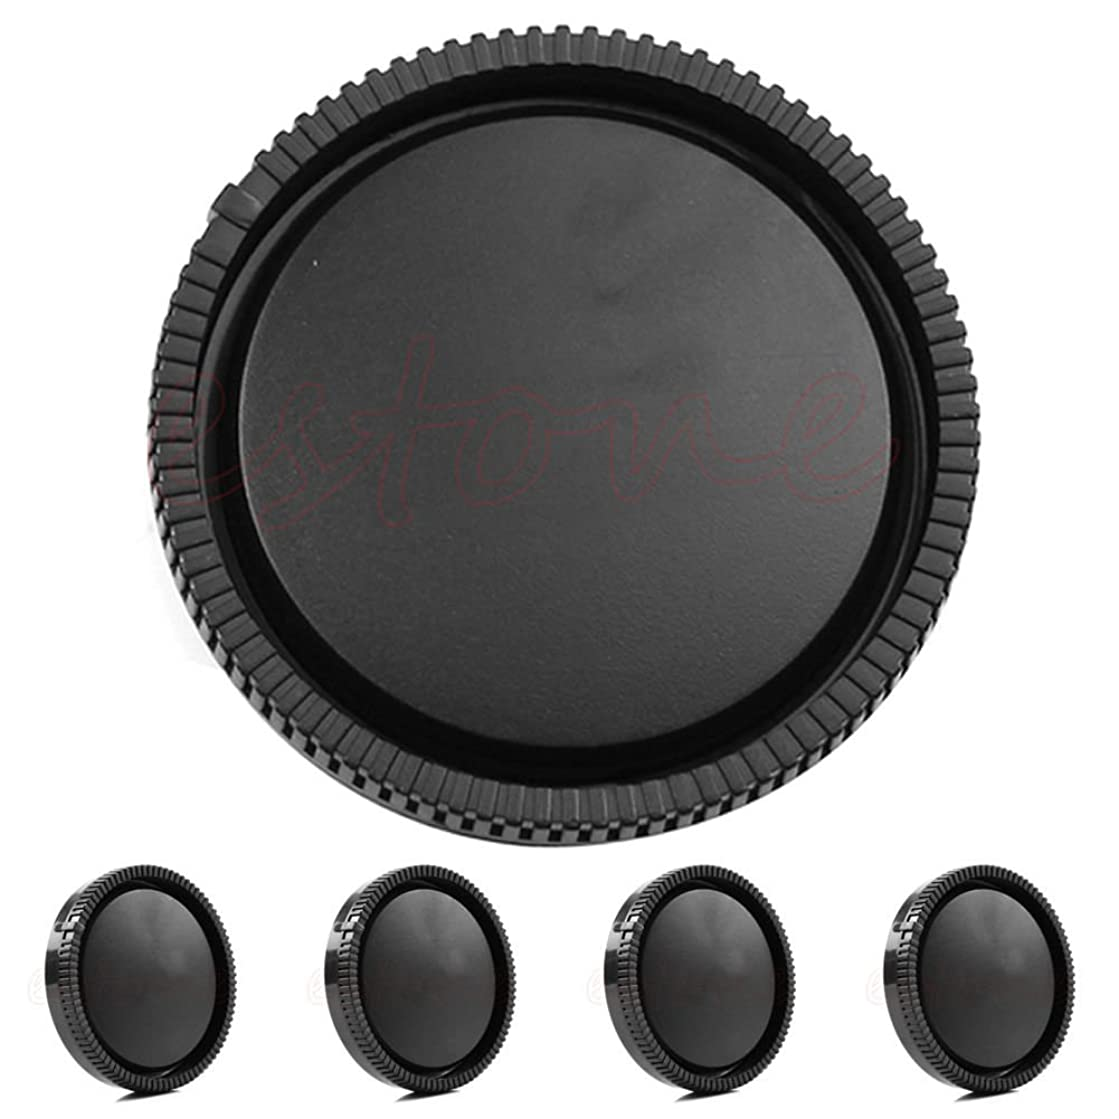 Kococme 5 PCS Rear Lens Cap Cover for Sony E-Mount Lens Cap NEX NEX-5 NEX-3